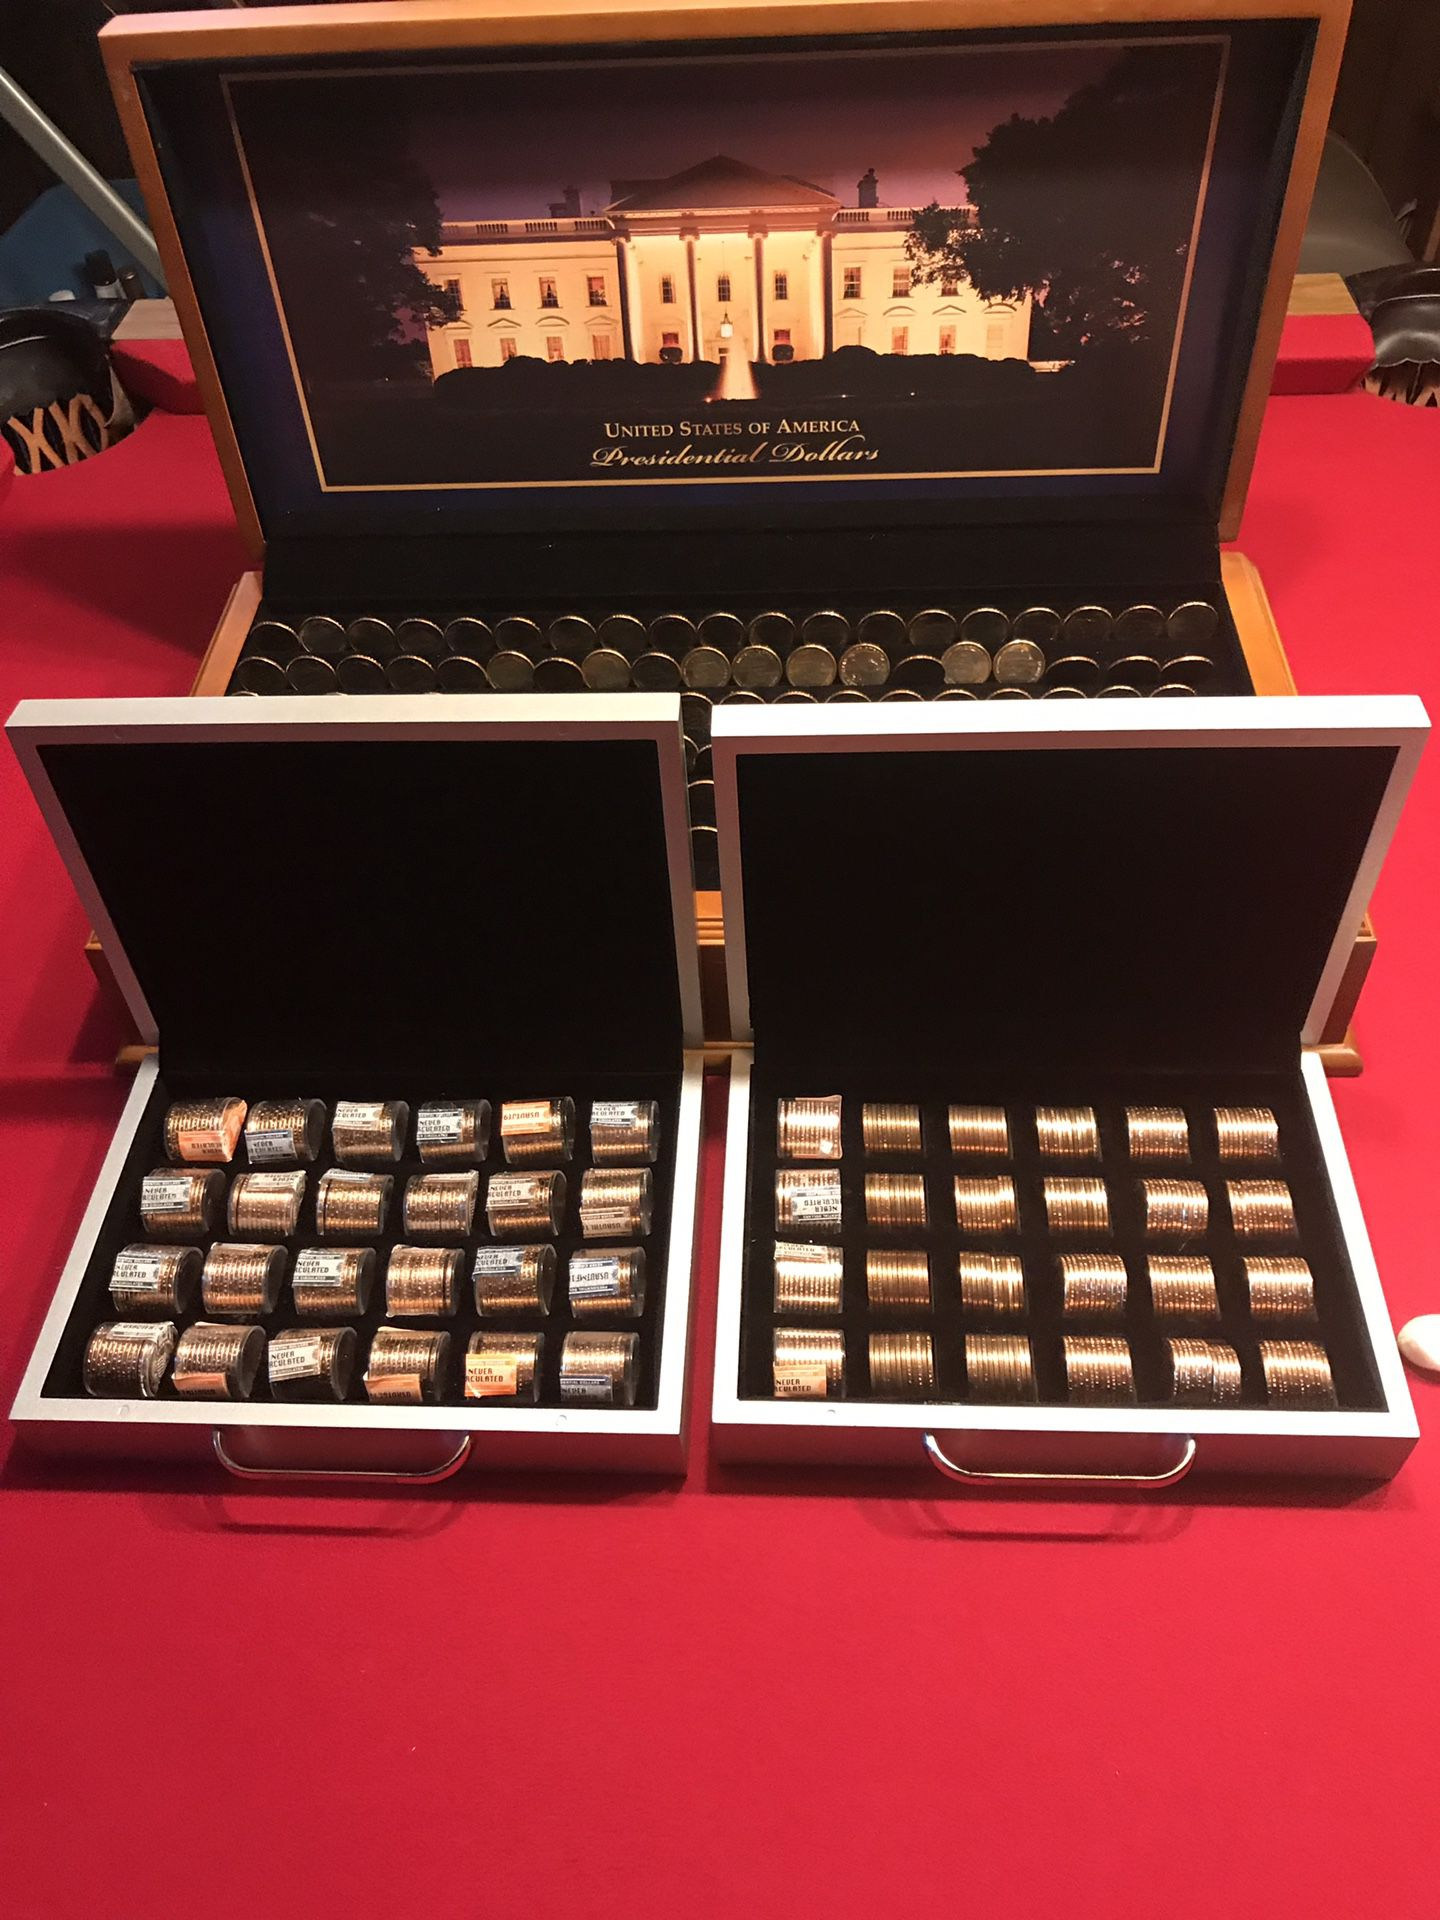 Presidential dollars valued at $2.95 each in today's market. All in a professional case and in touches by human hands. Shipped from the mint to me.